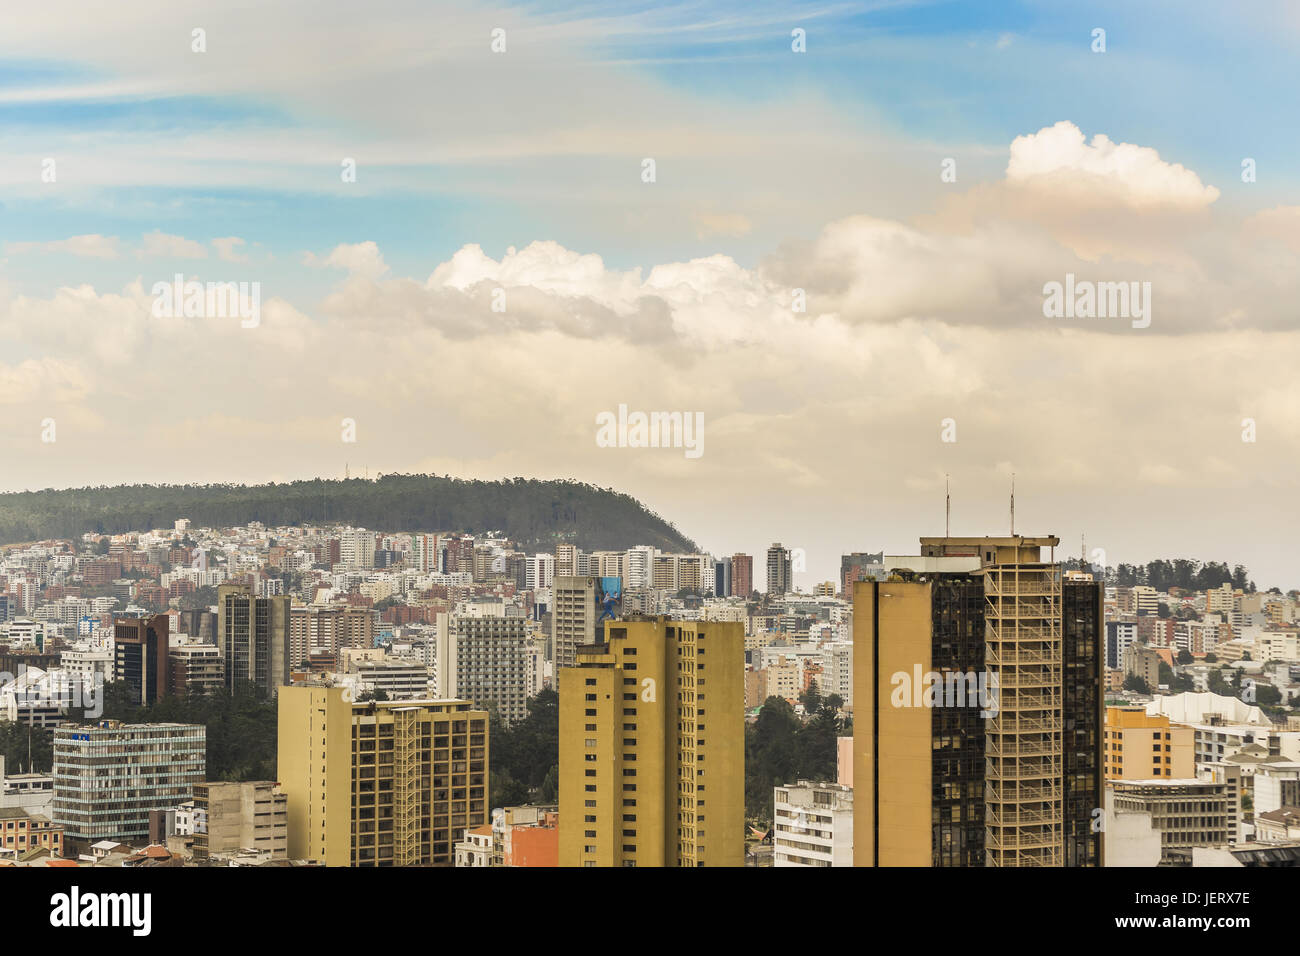 Cityscape Aerial View of Quito Ecuador - Stock Image